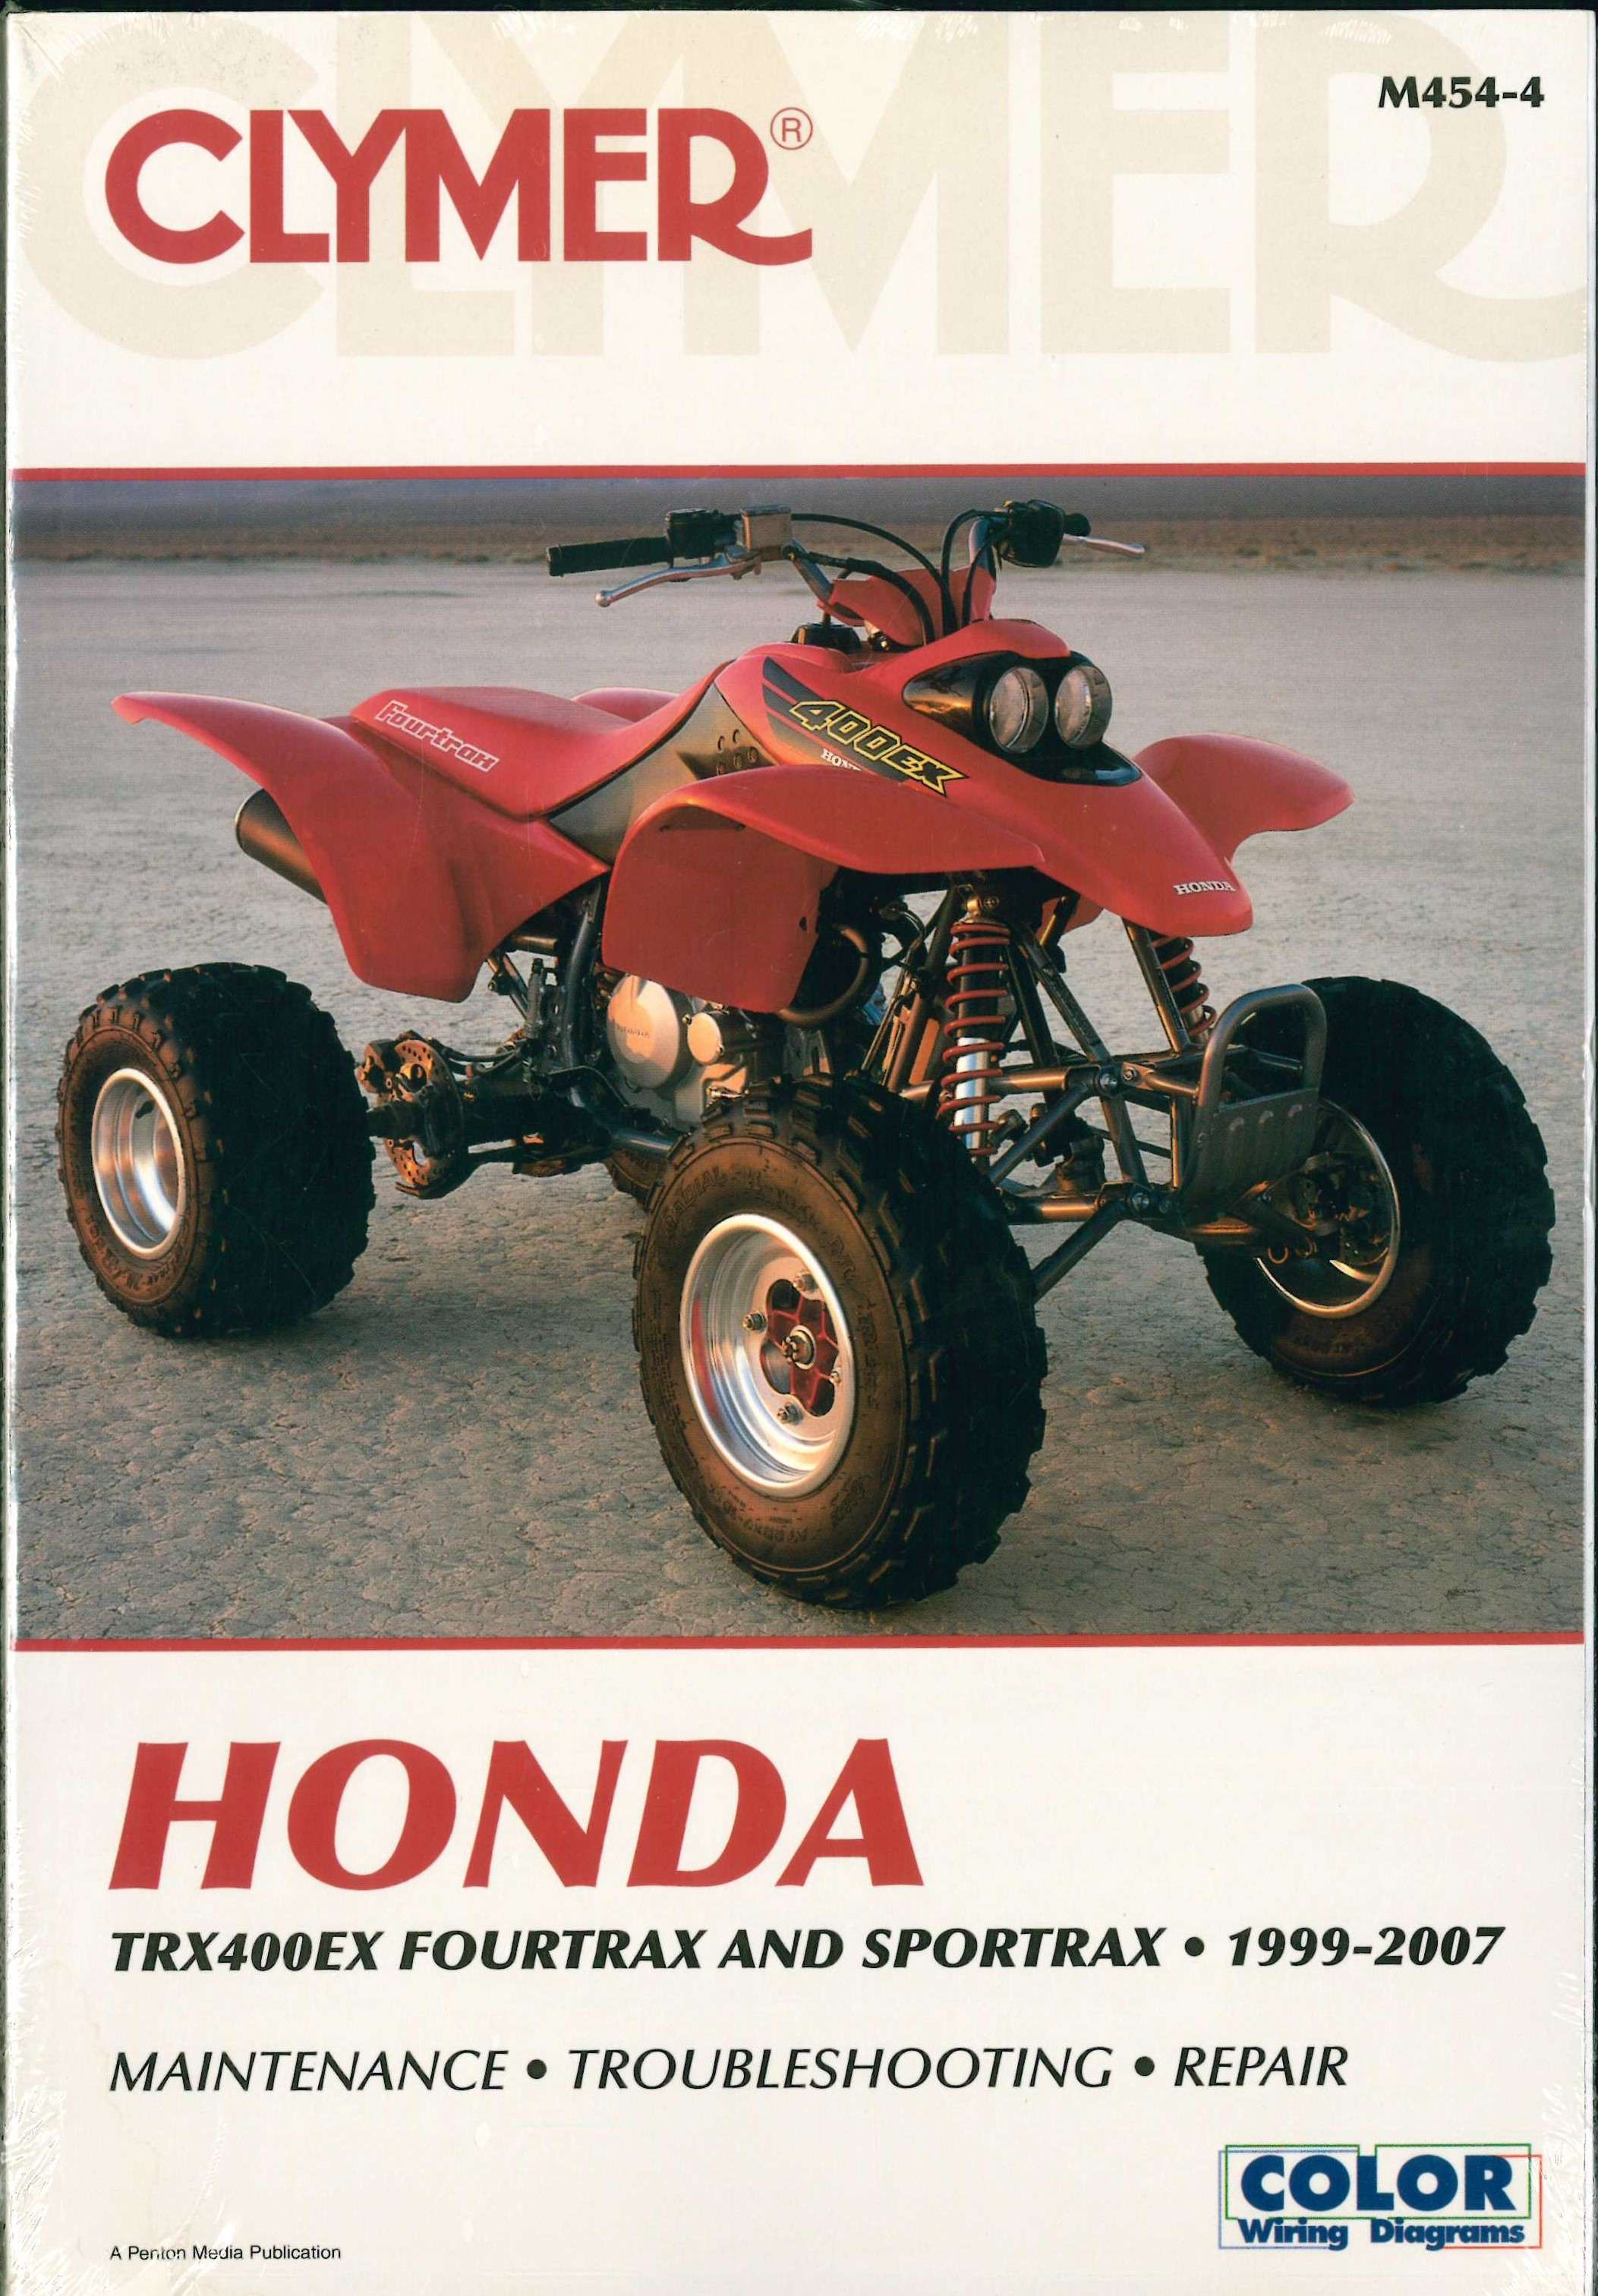 1999-2007 Honda TRX400EX Fourtrax Sportrax ATV Repair Manual ...